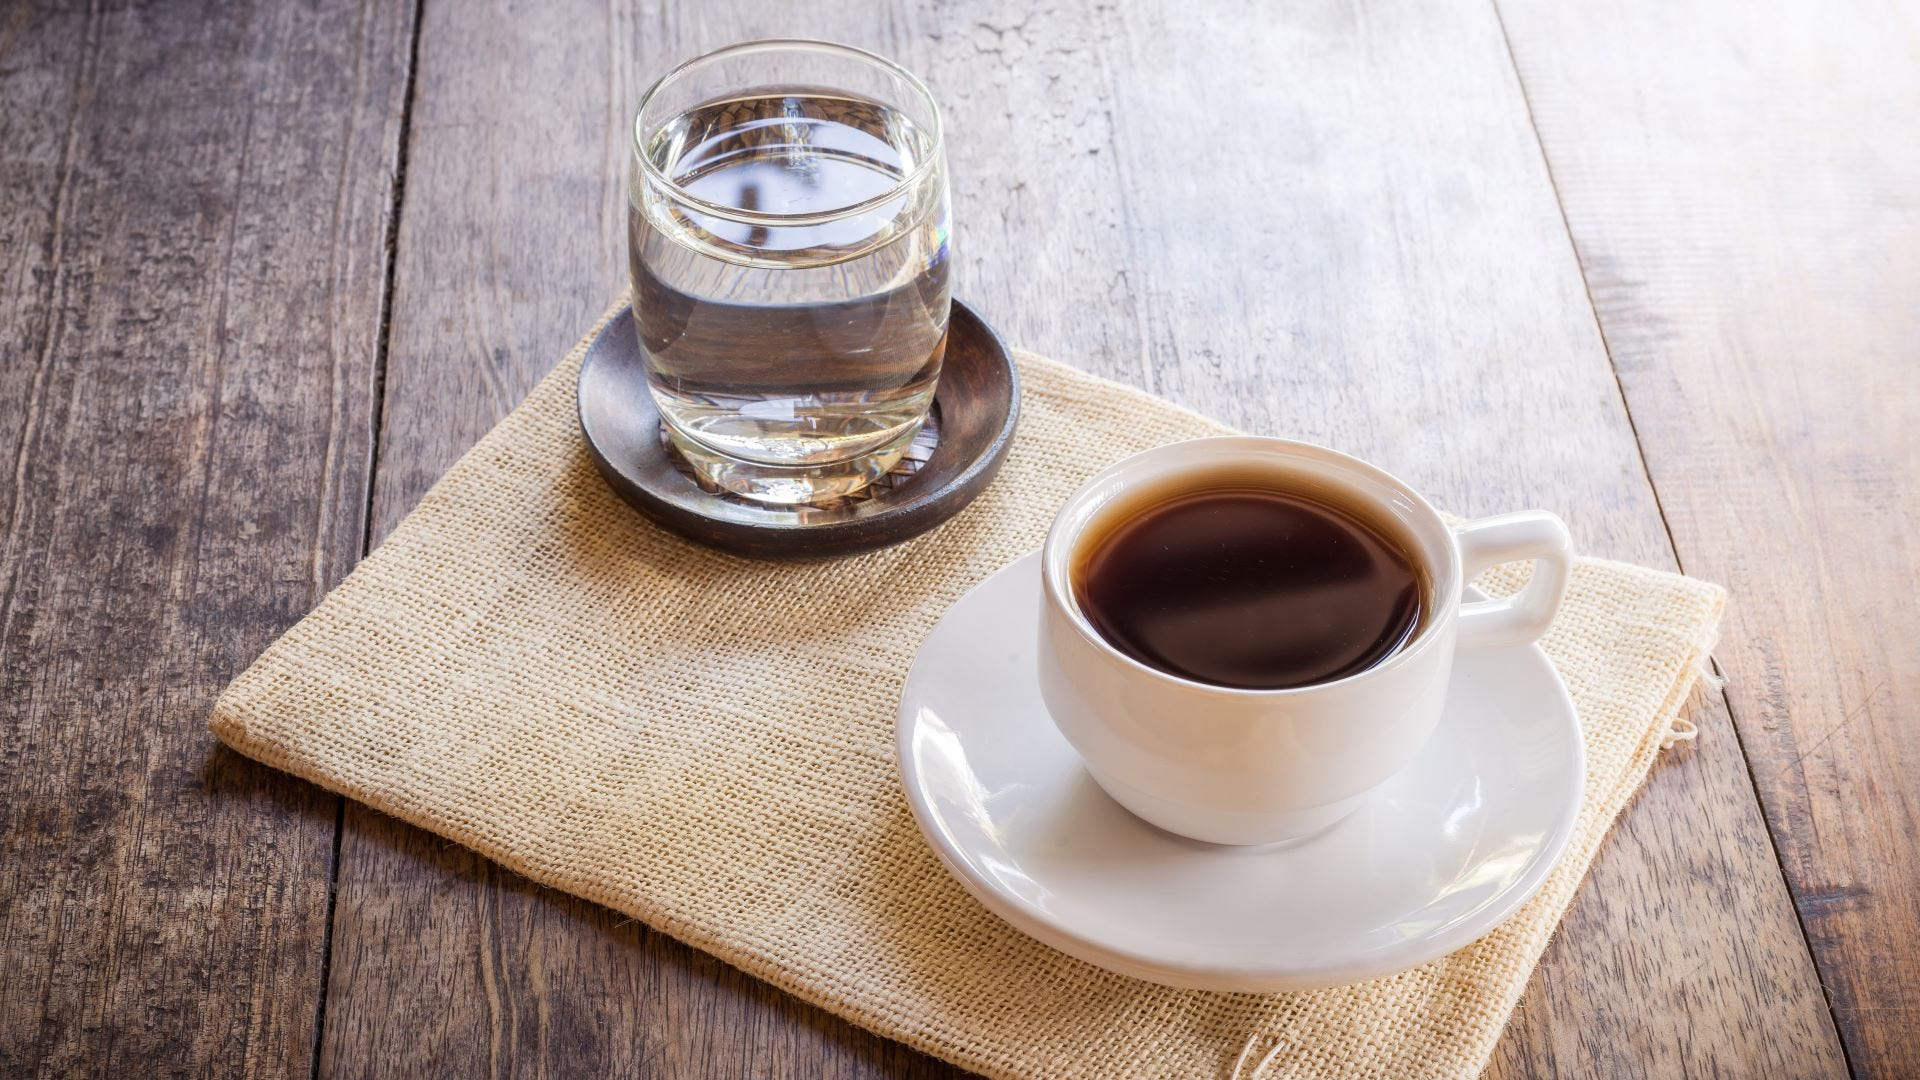 A glass of water sititng next to a mug of coffee.